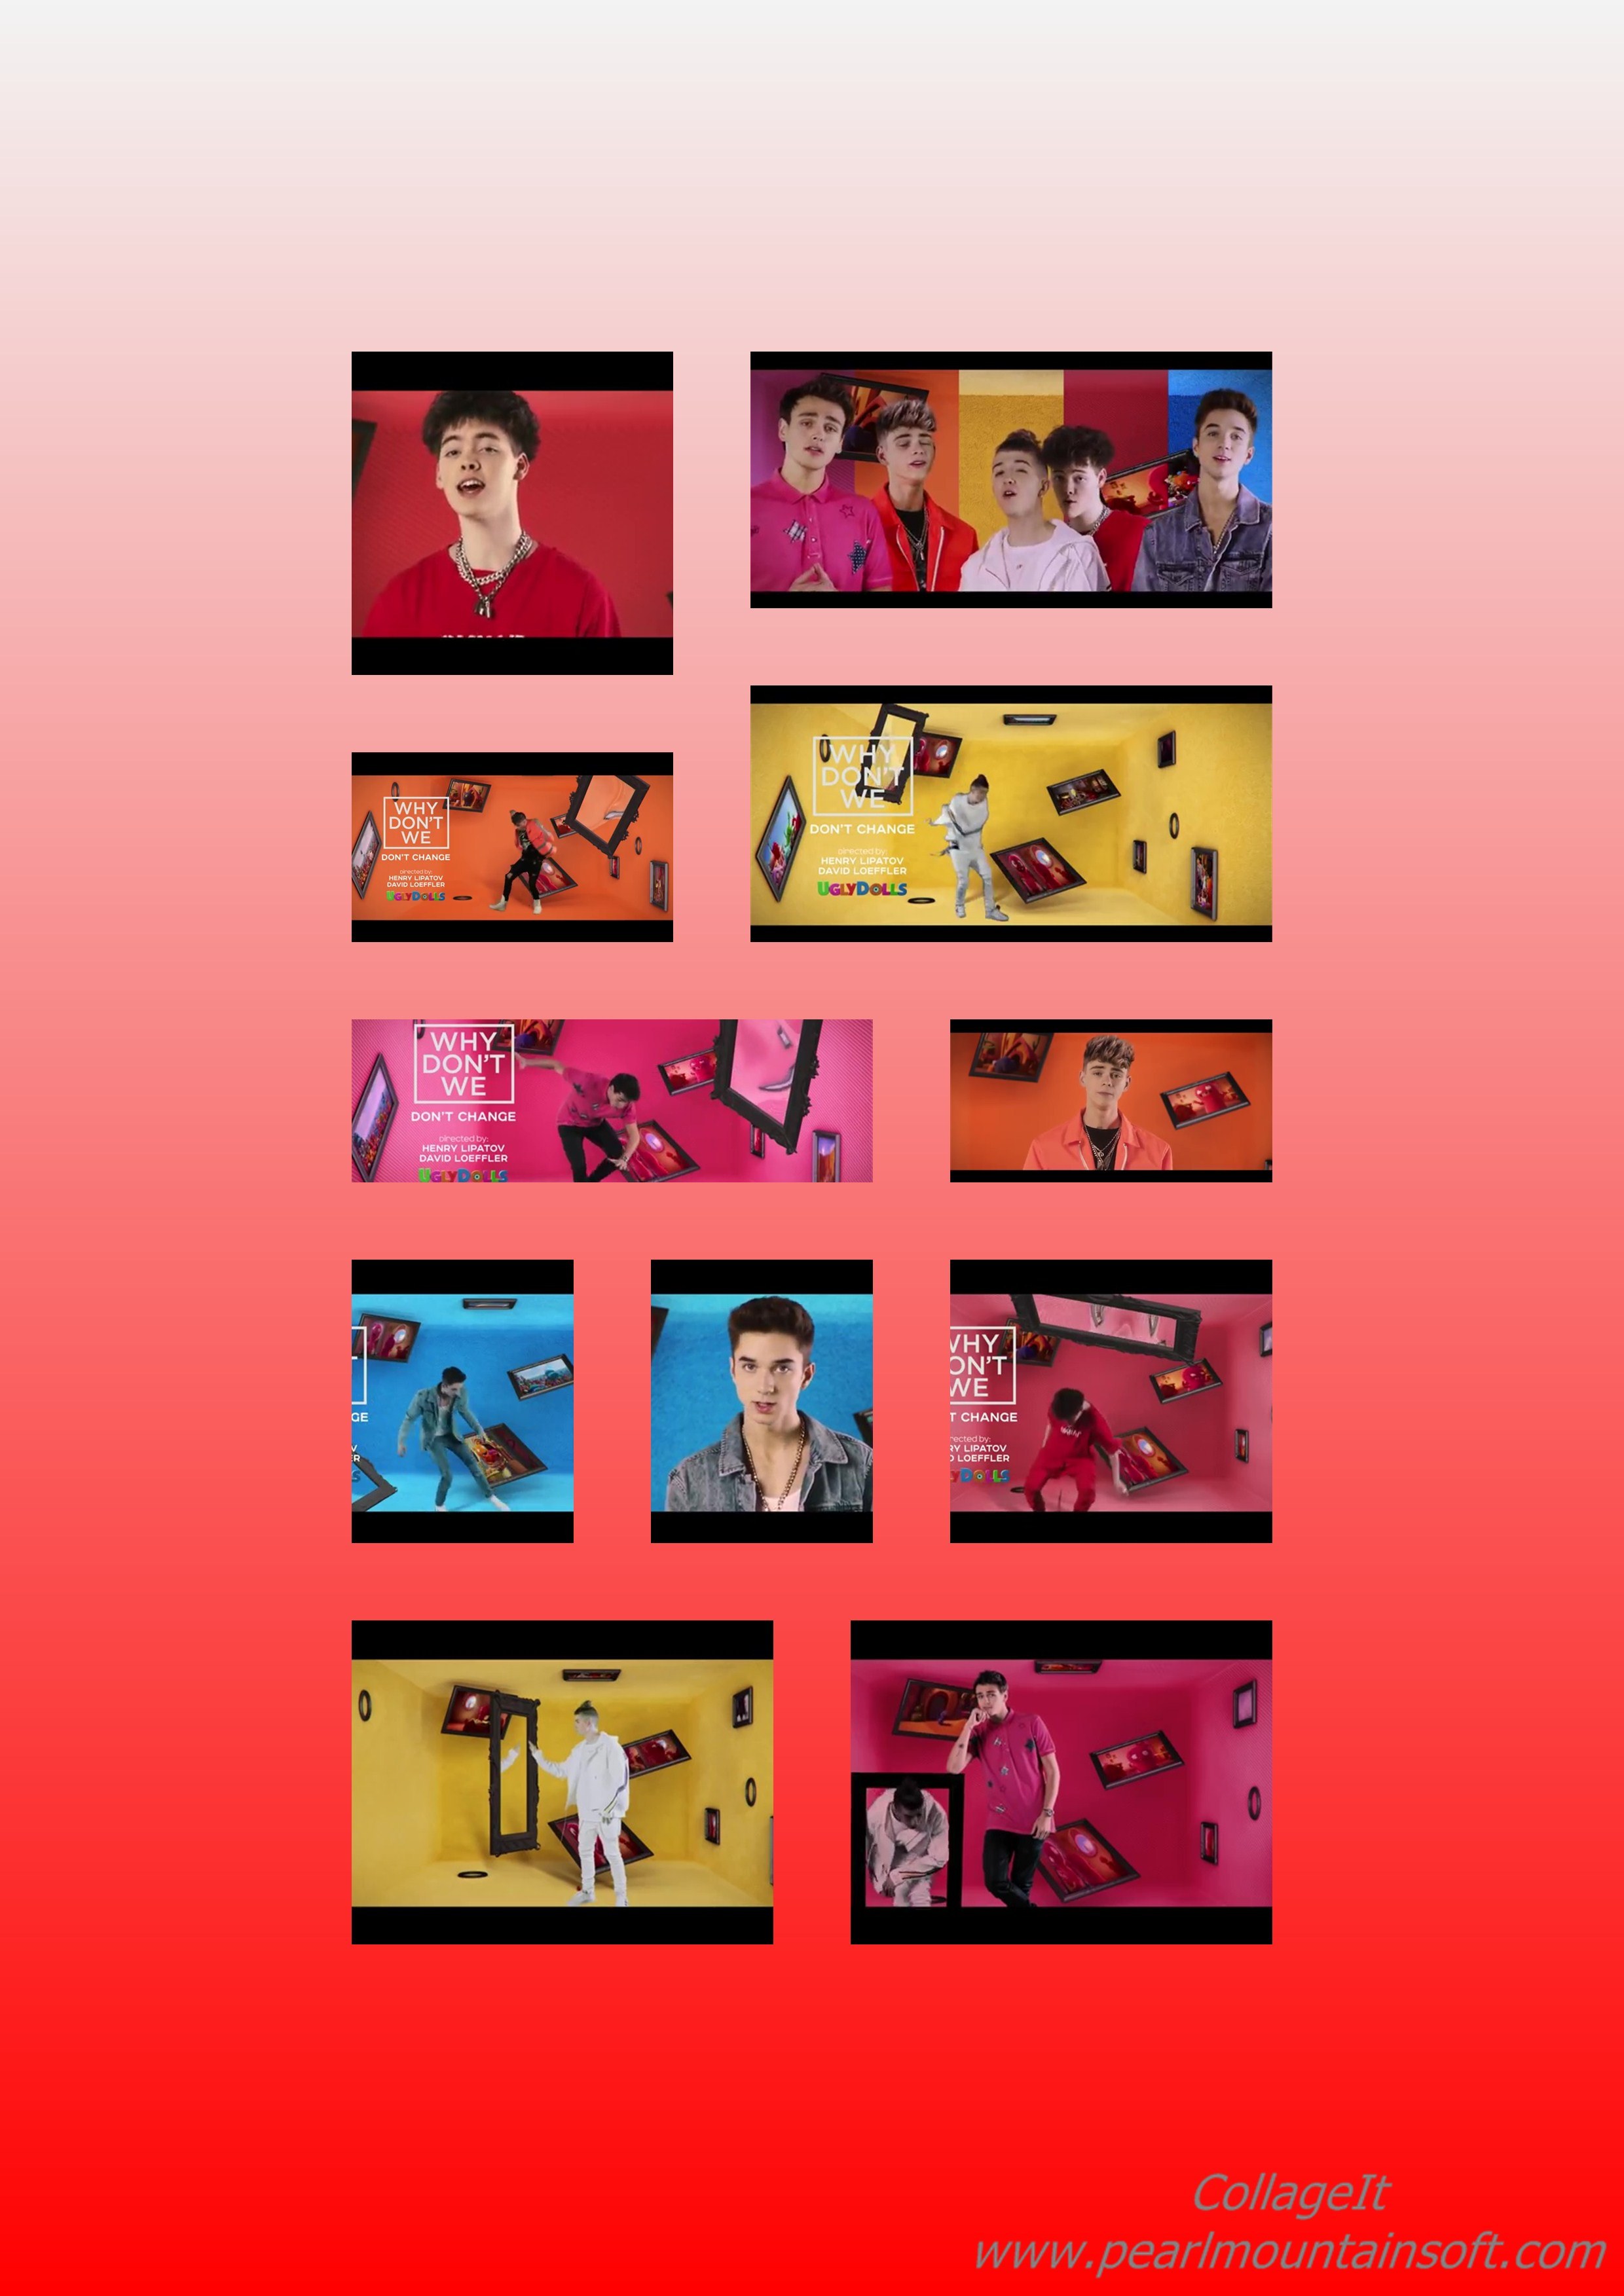 (+LYRICS+TRANSLATION+MEANING) MUSIC REVIEW: DON'T CHANGE BY WHY DON'T WE